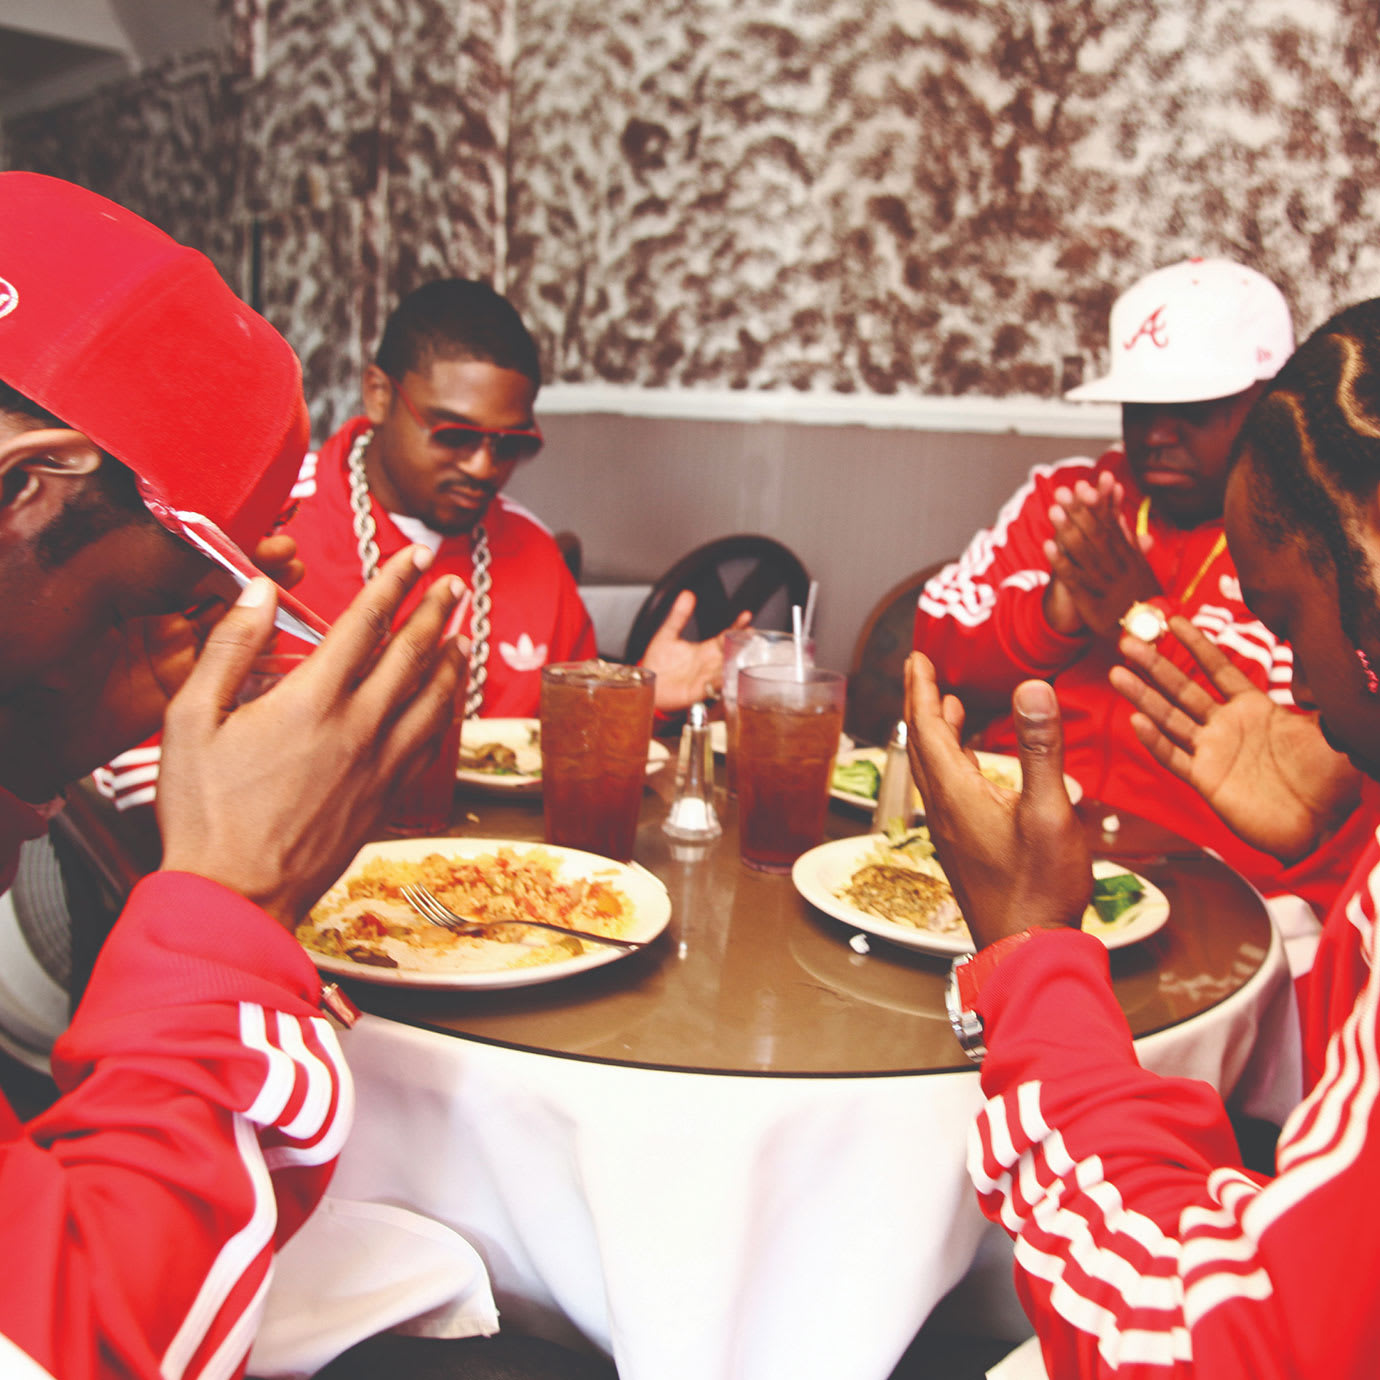 Four men in matching red tracksuits praying around a table.